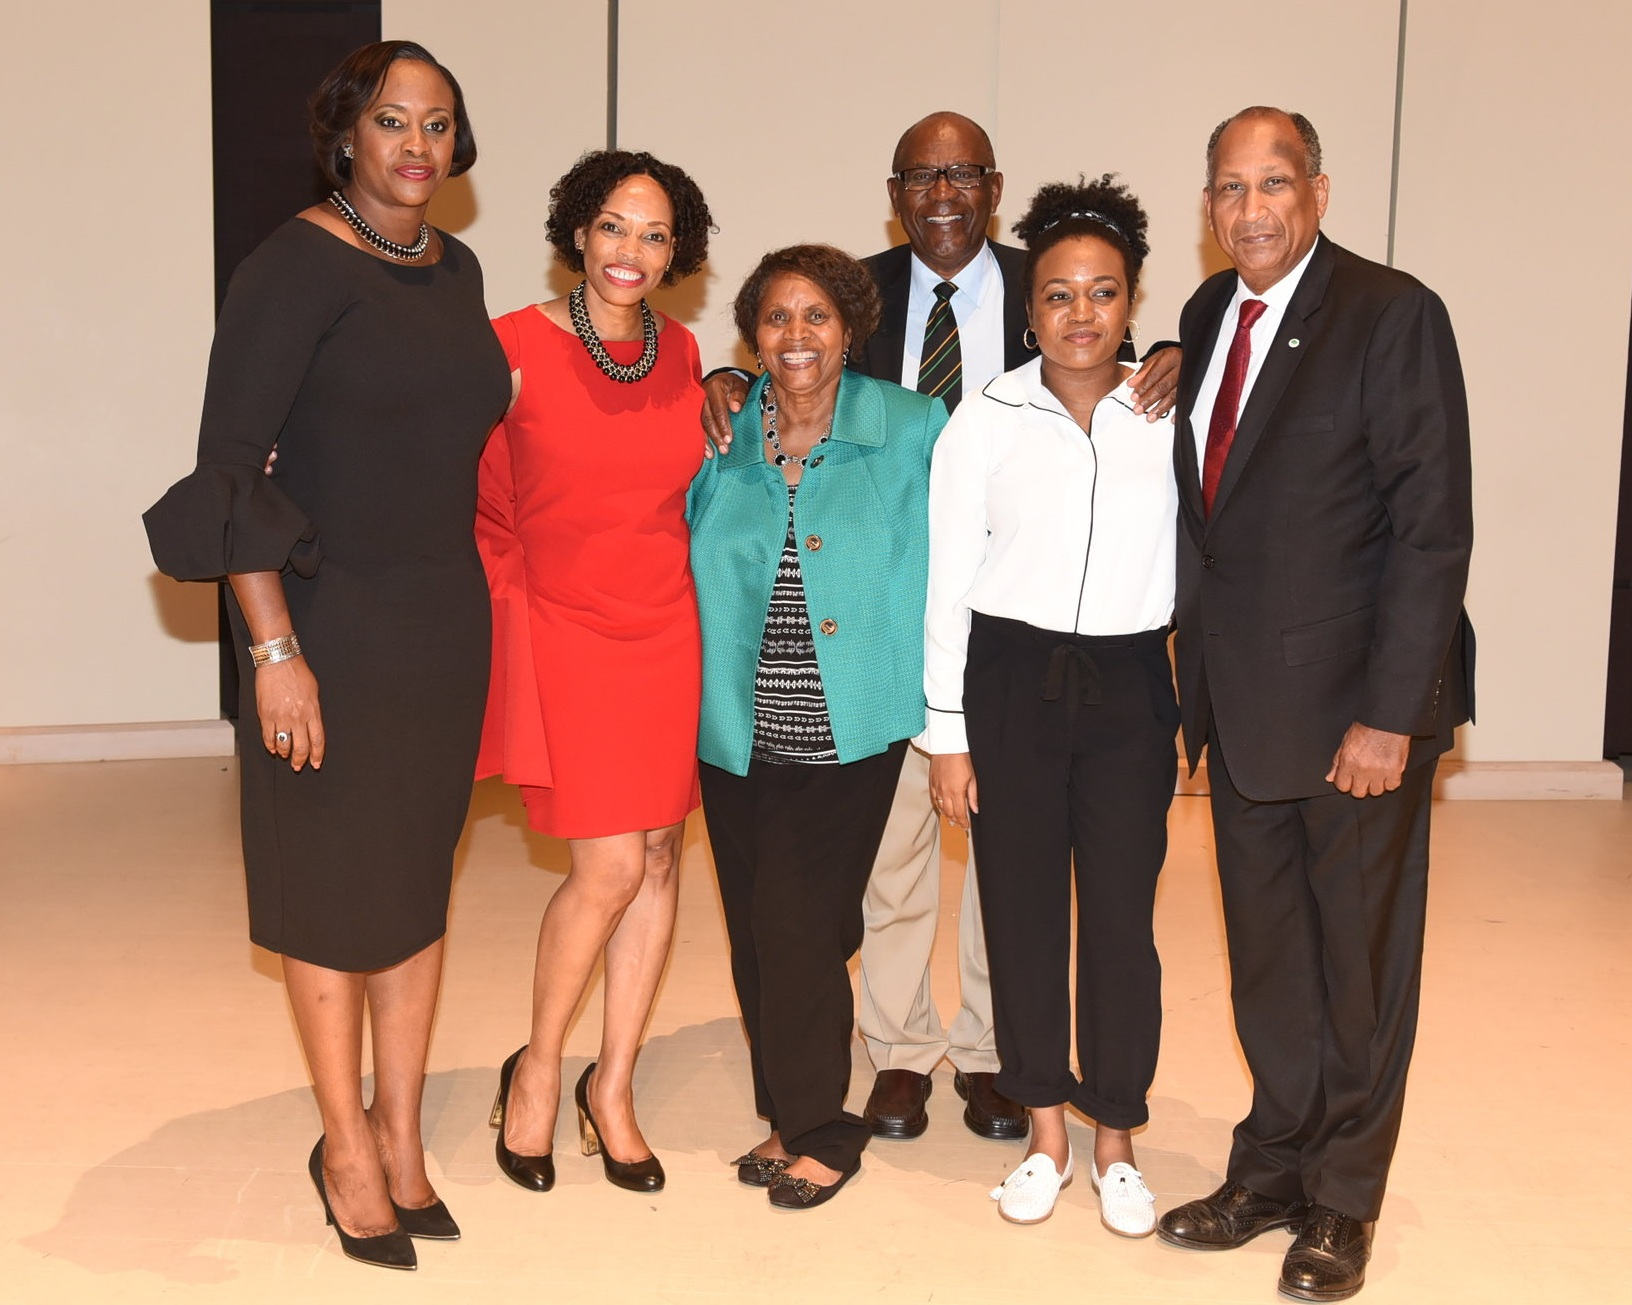 Howard Shearer (r) joined Juliet Holness (l), Dr. Andrea Davis, Pamela Appelt, Joe Halstead and Tka Pinnock at the Jamaica 55 Canada Committee & Jean Augustine Chair at York University lecture in October 2017